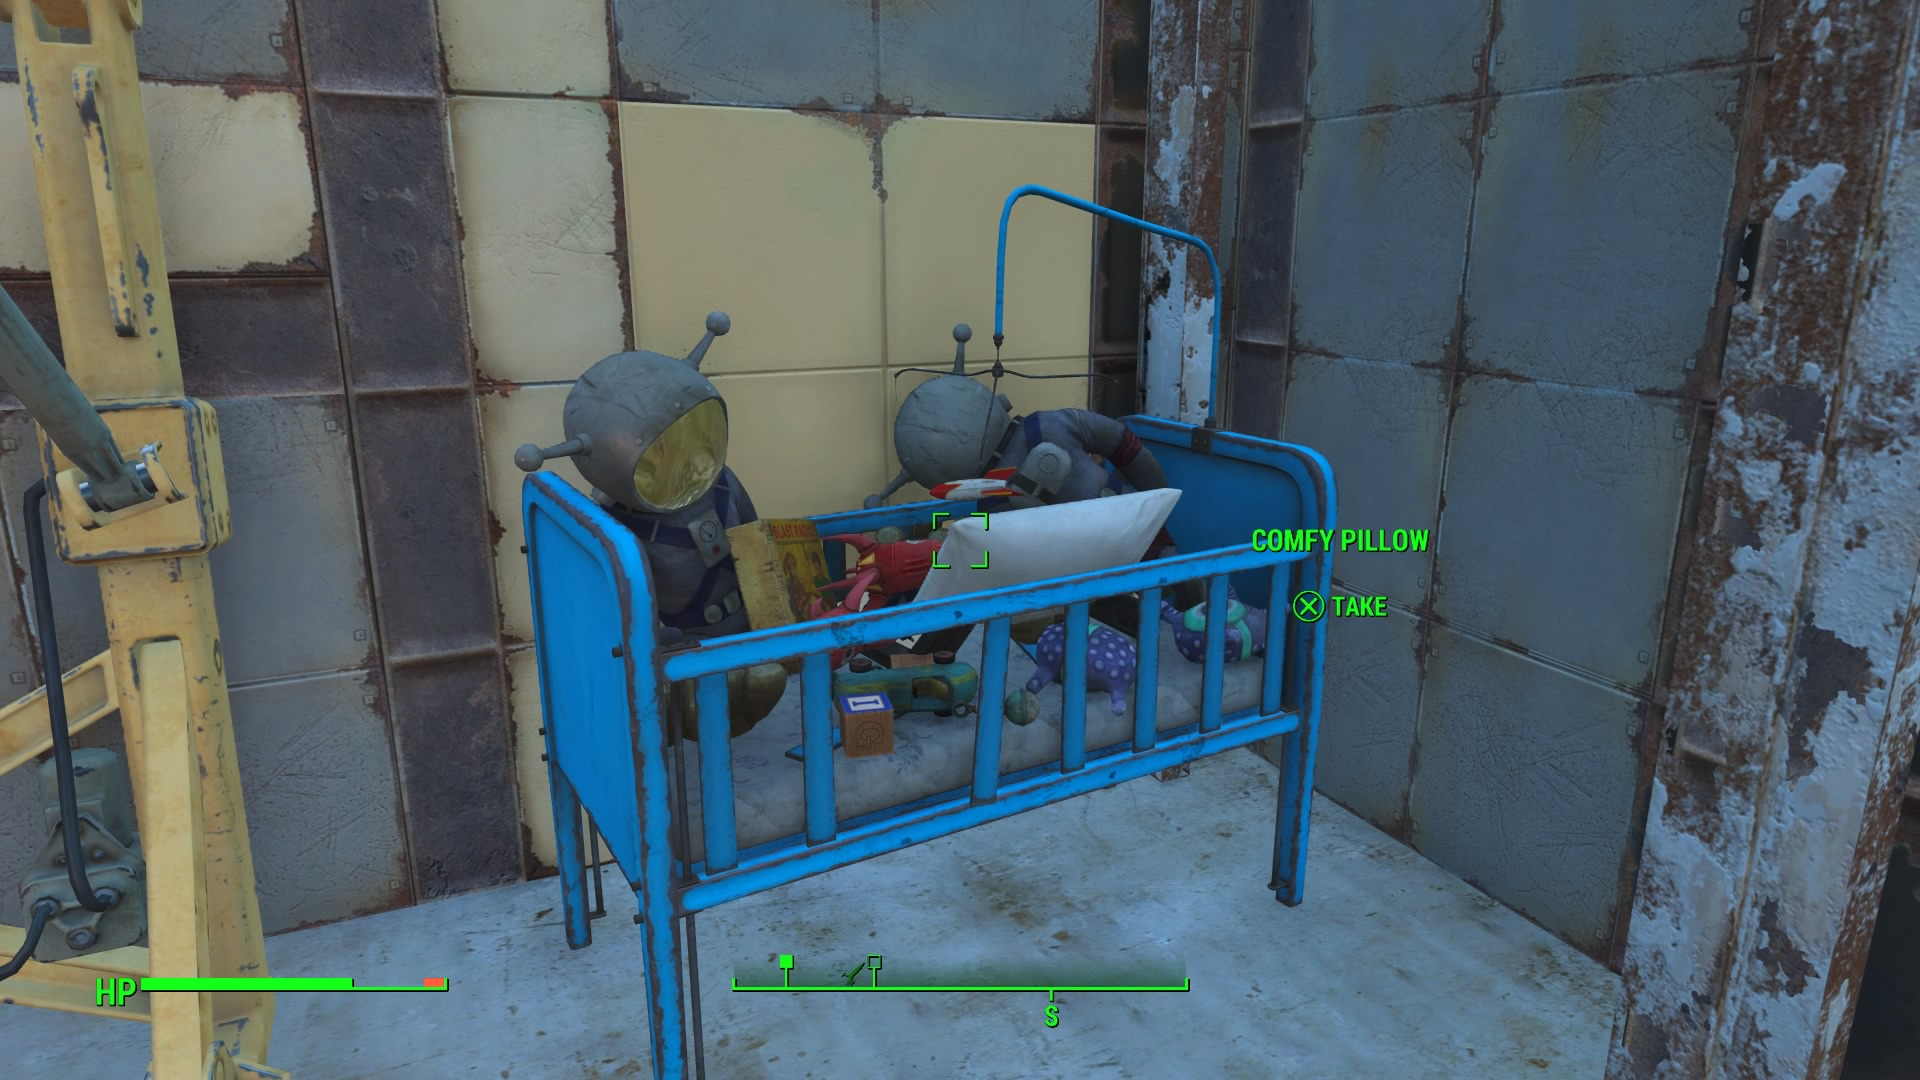 Fallout 4 decorating swamijane style for Fallout 4 decorations